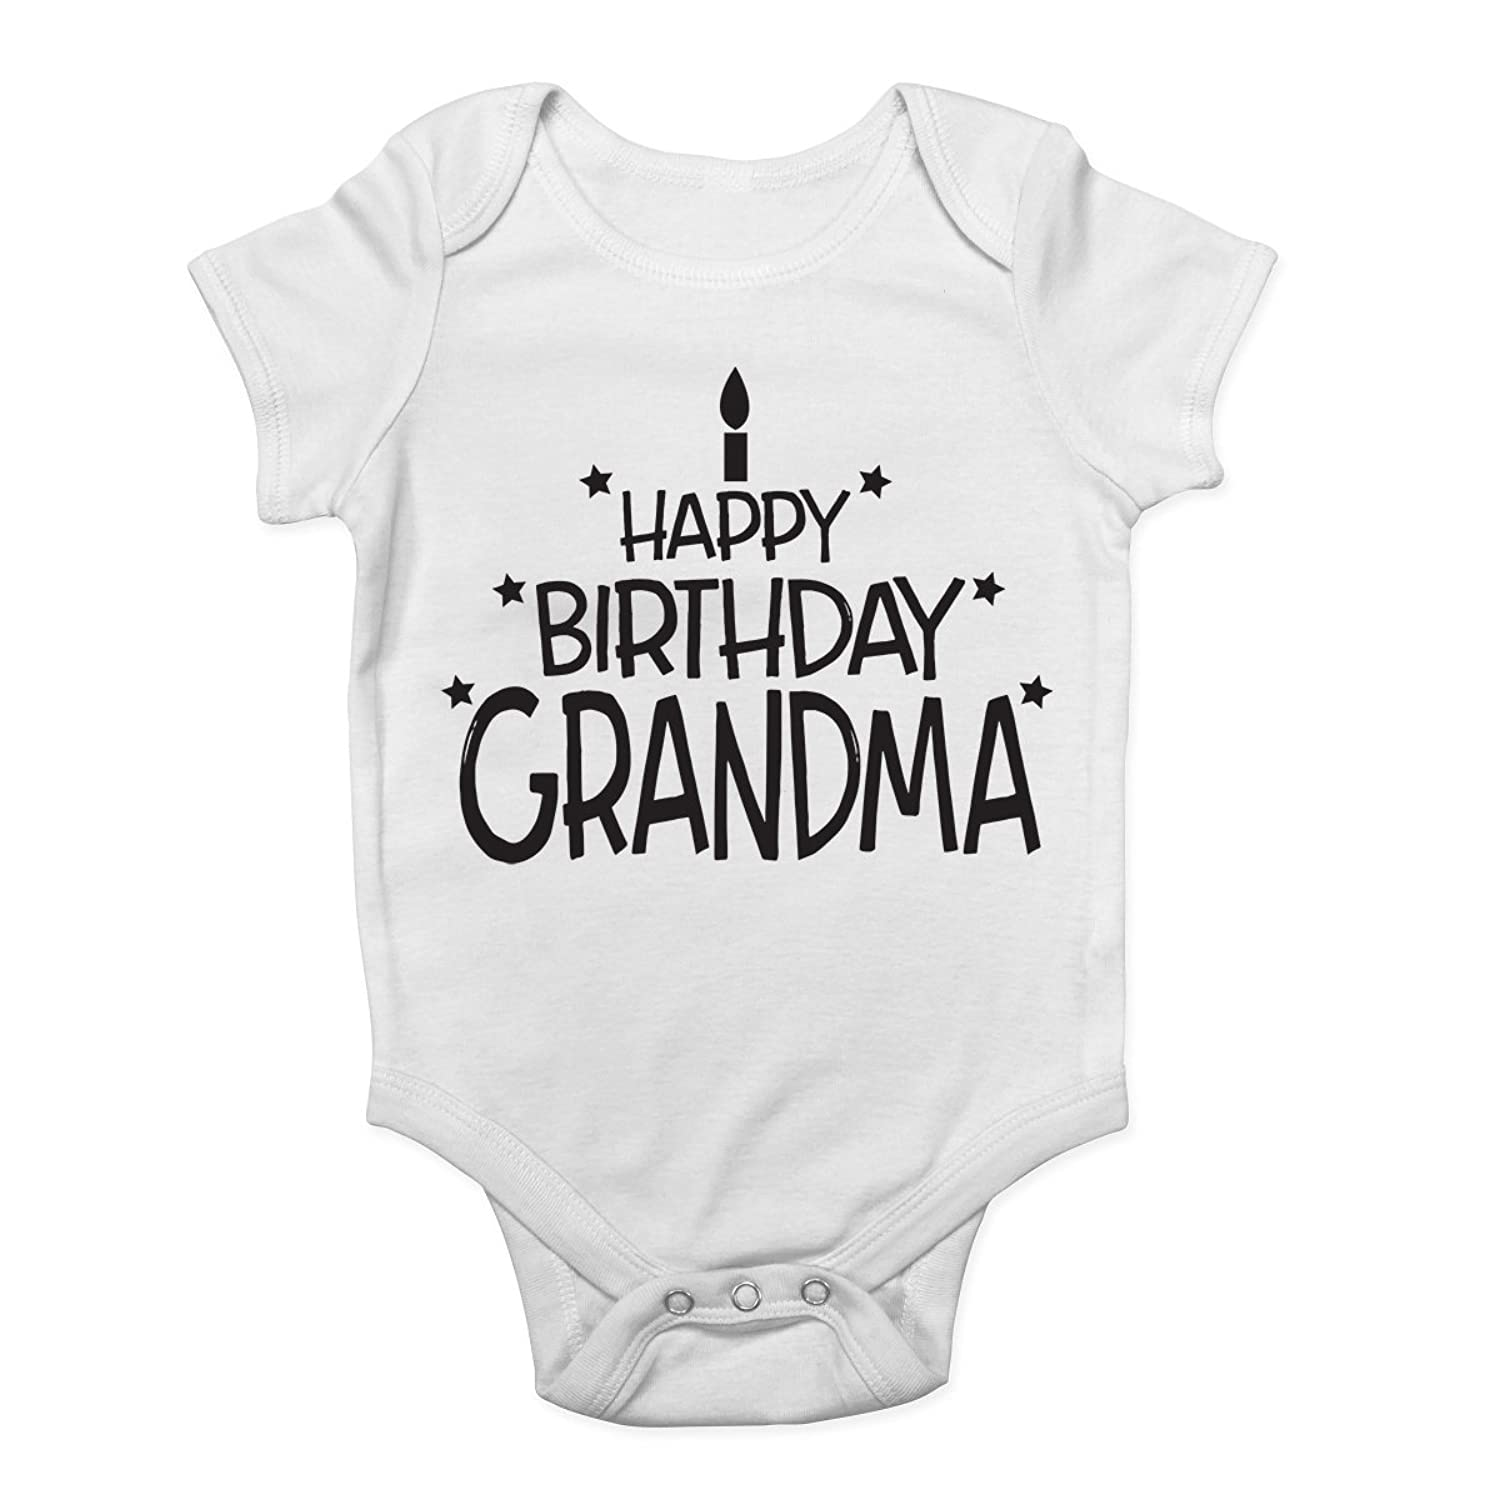 Shopa t Happy Birthday Grandma Cute Boys and Girls Baby Vest